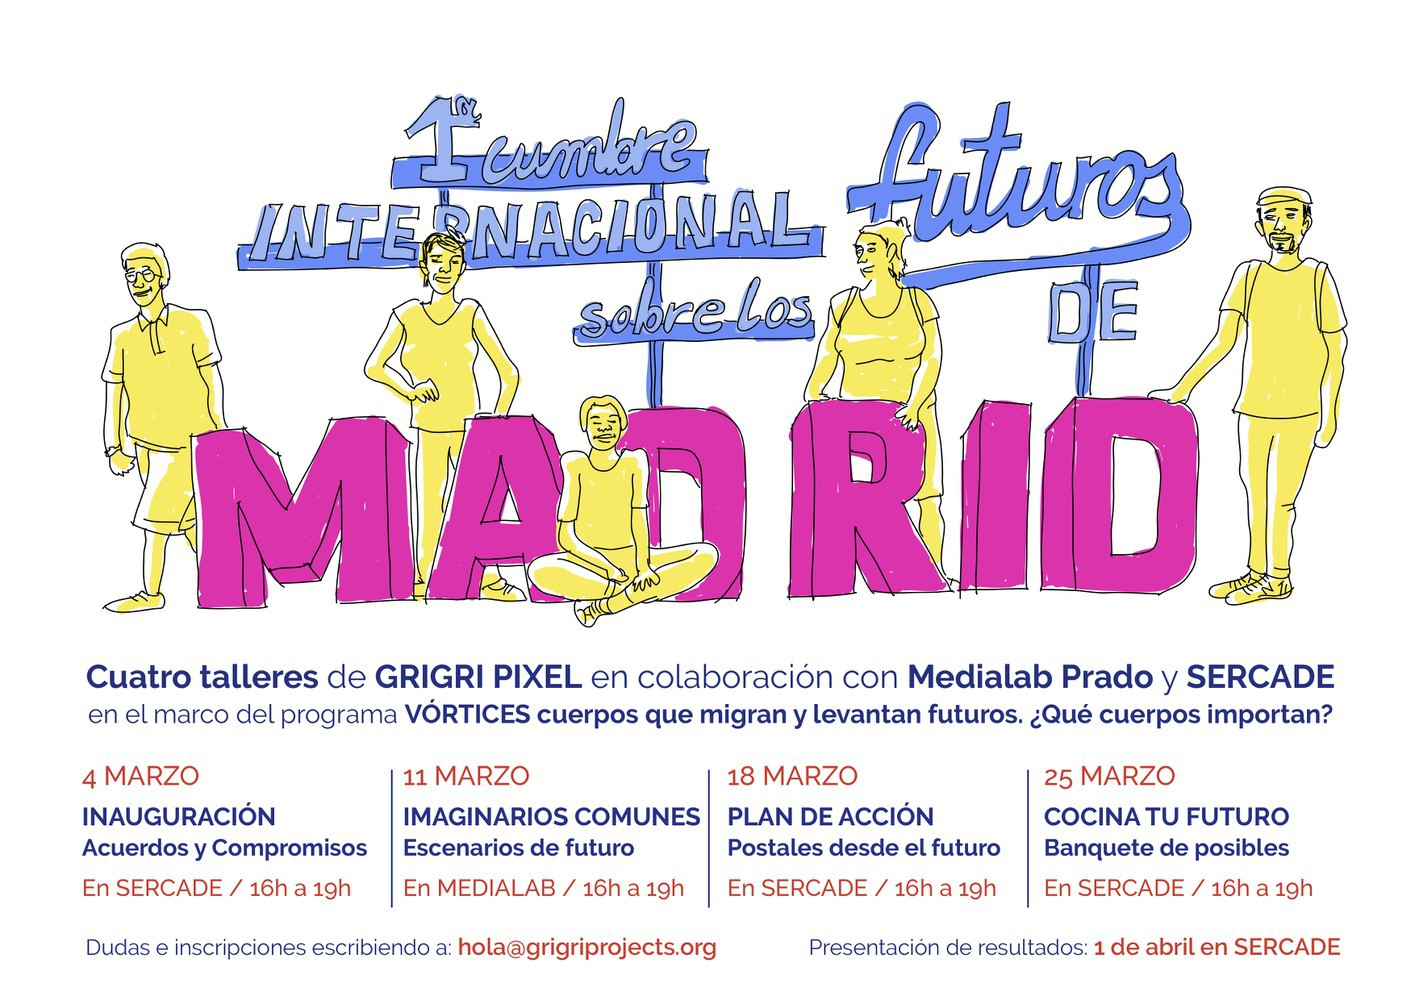 FOUR SESSIONS for possible futures in the city of Madrid